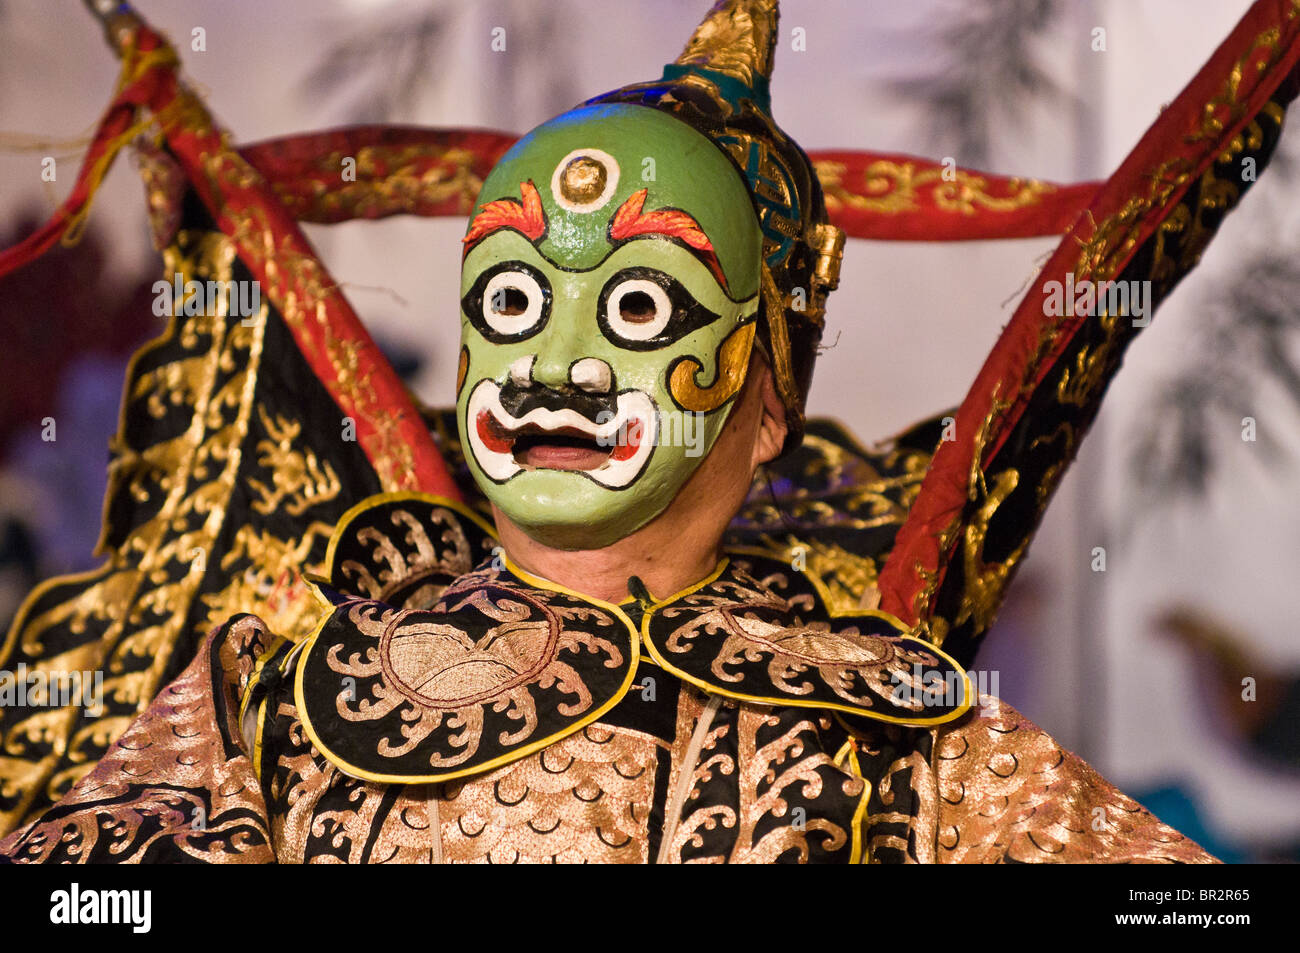 Actor in traditional face mask and costume in Sichuan Opera at Shufenyayuan Tea House, Chengdu, Sichuan Province, - Stock Image